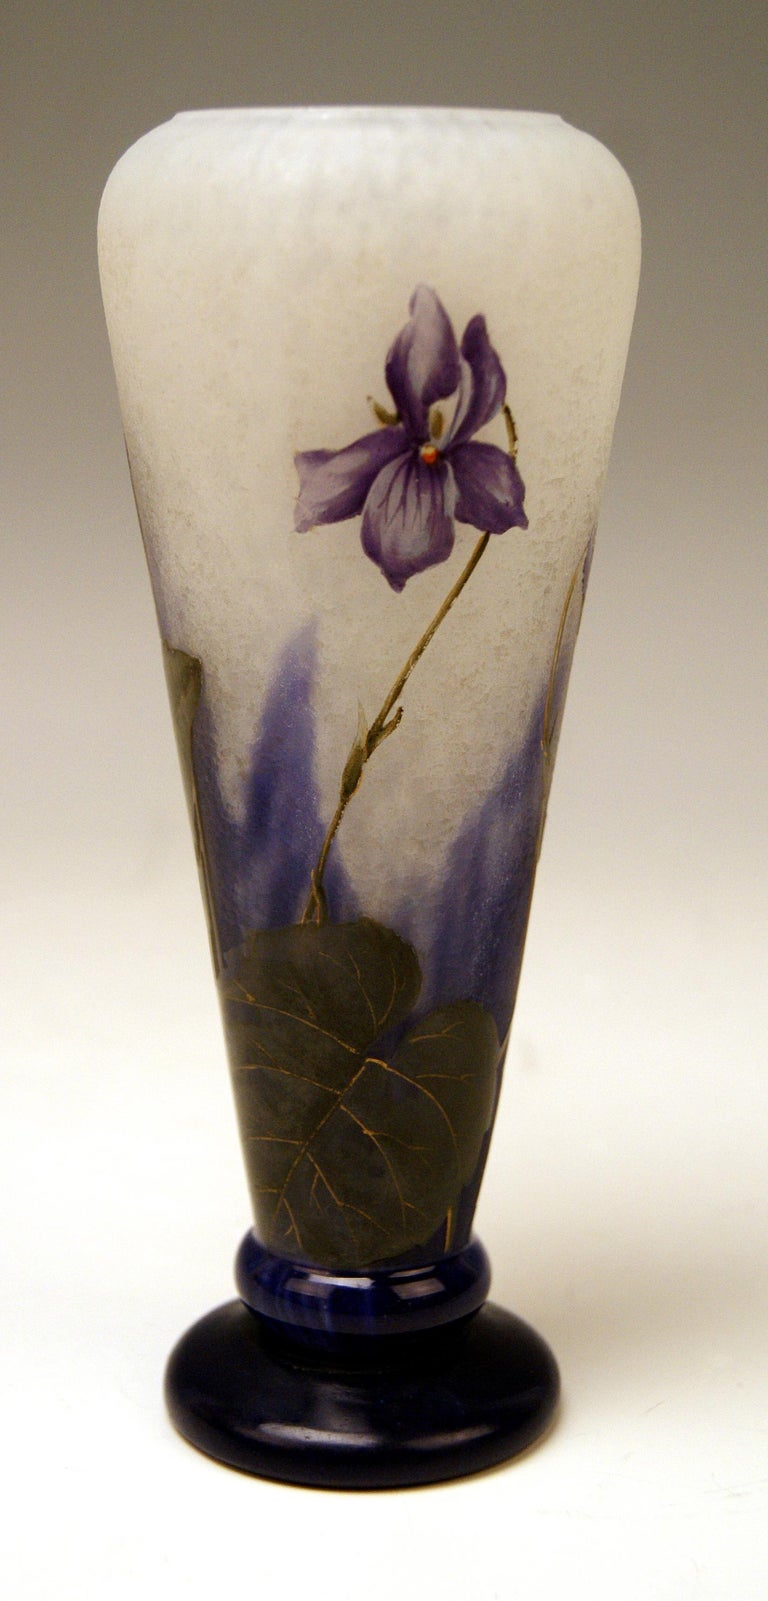 French Daum Nancy France Art Nouveau Early Vase with Violets Flowers Made, circa 1895